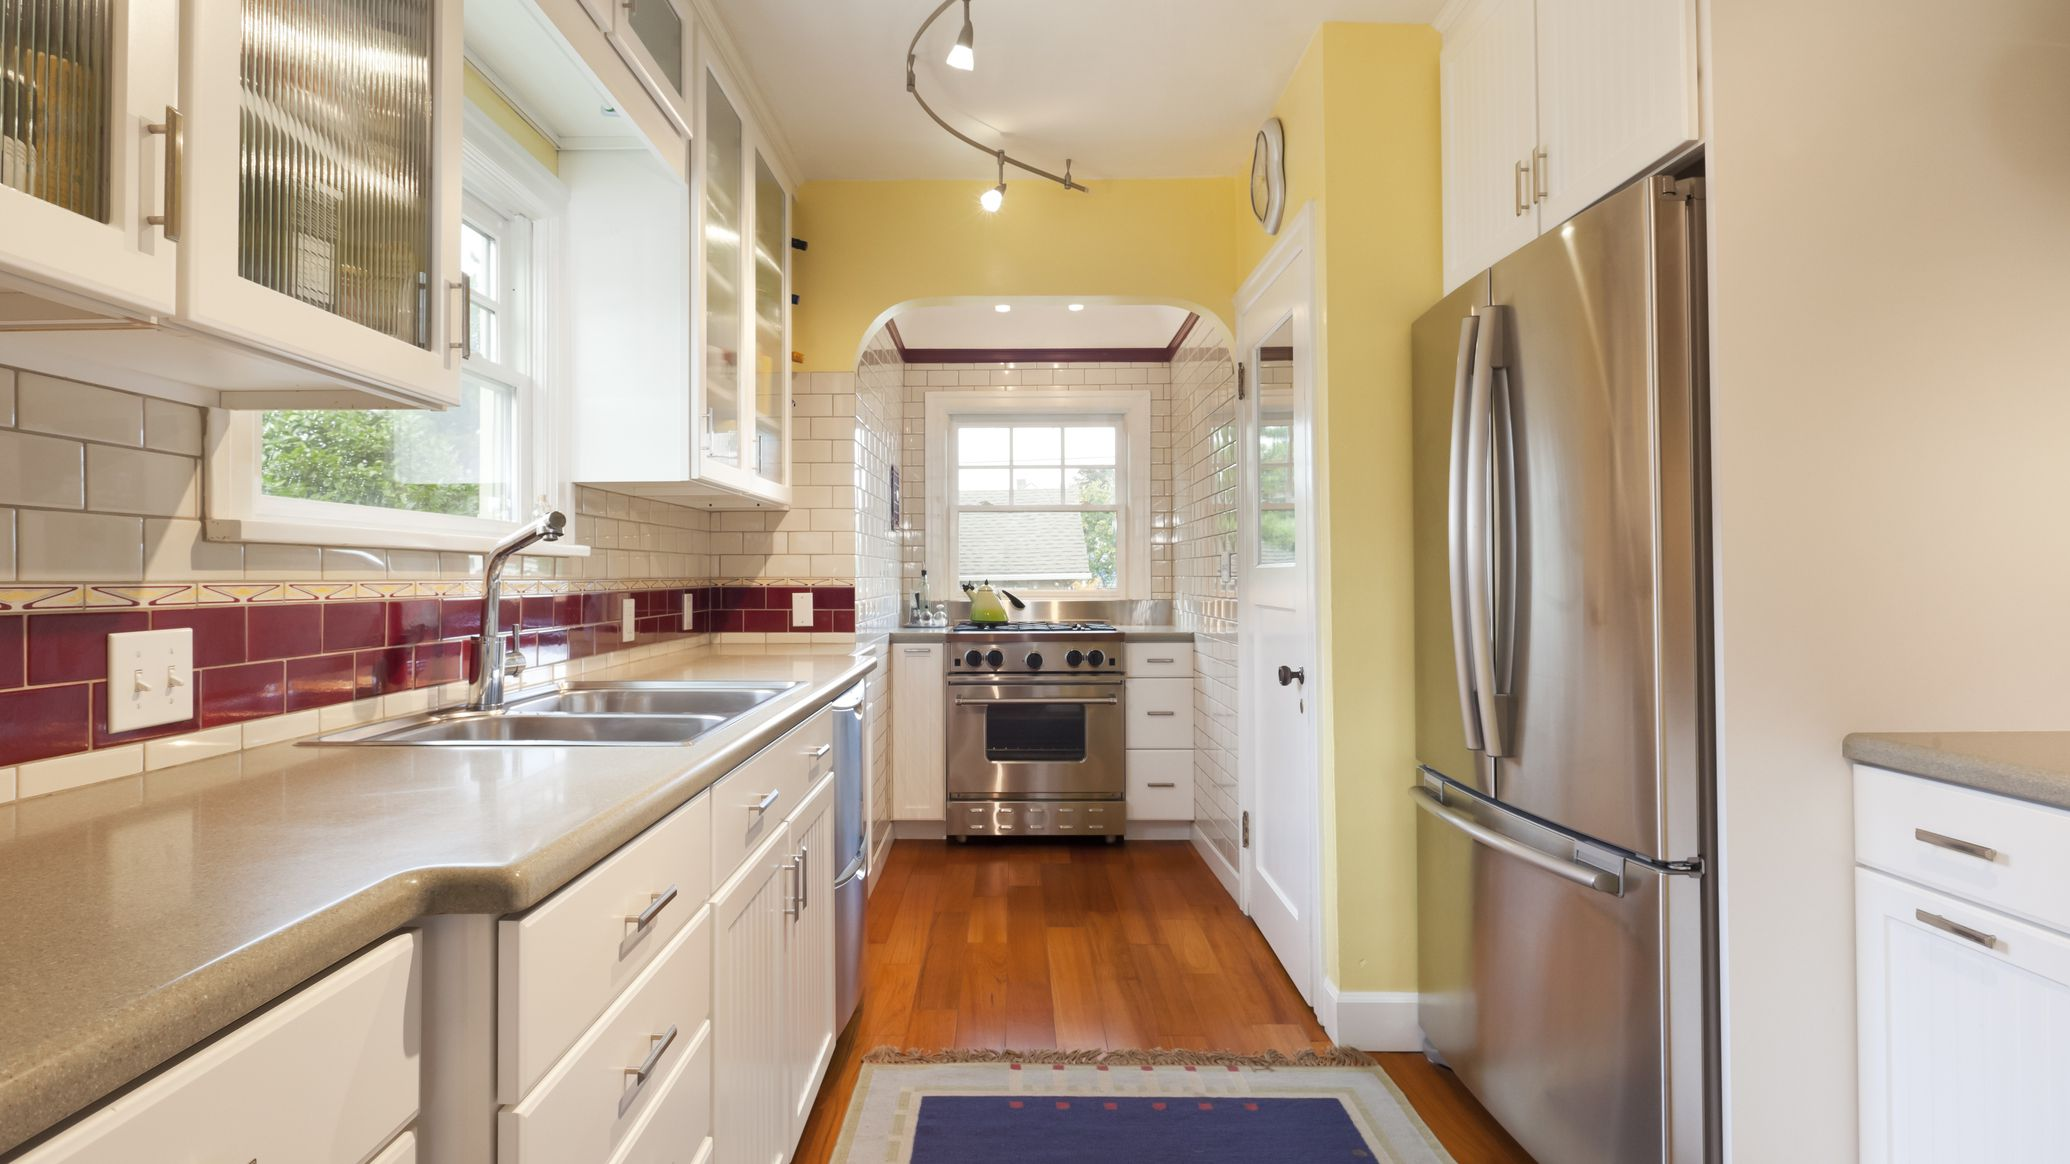 What Is a Galley Kitchen?